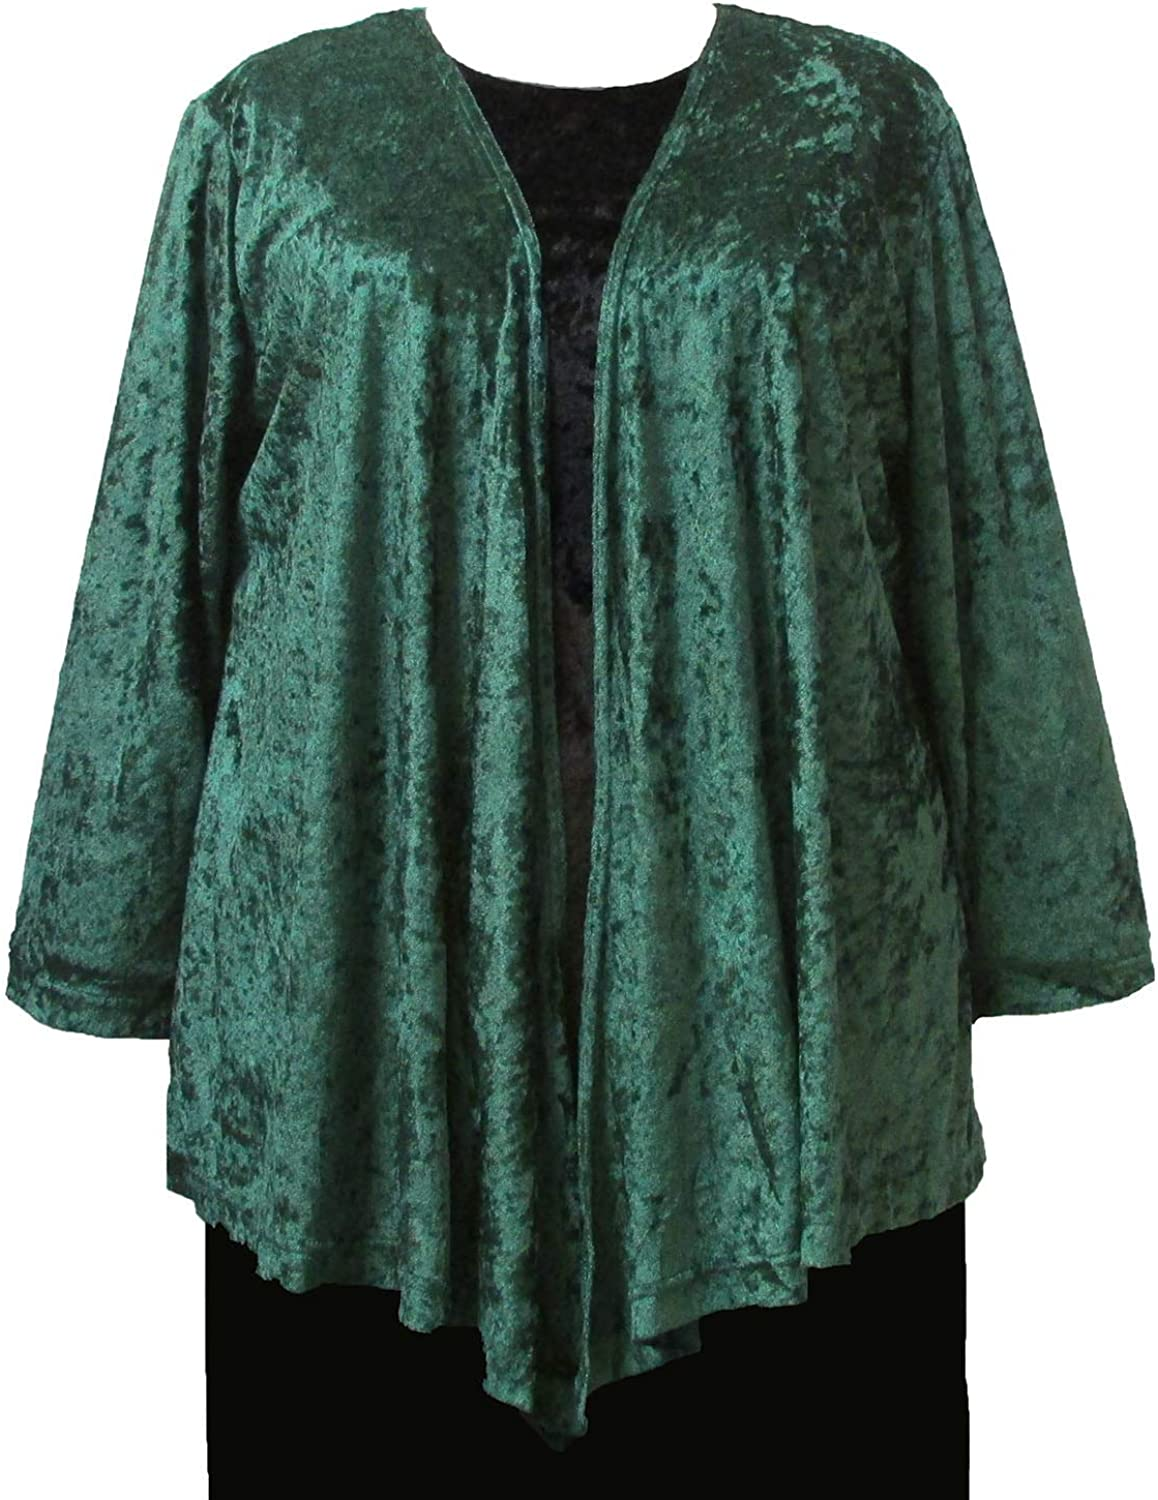 Forest Green Crushed Panne Delicate Drape Woman's Plus Size Cardigan